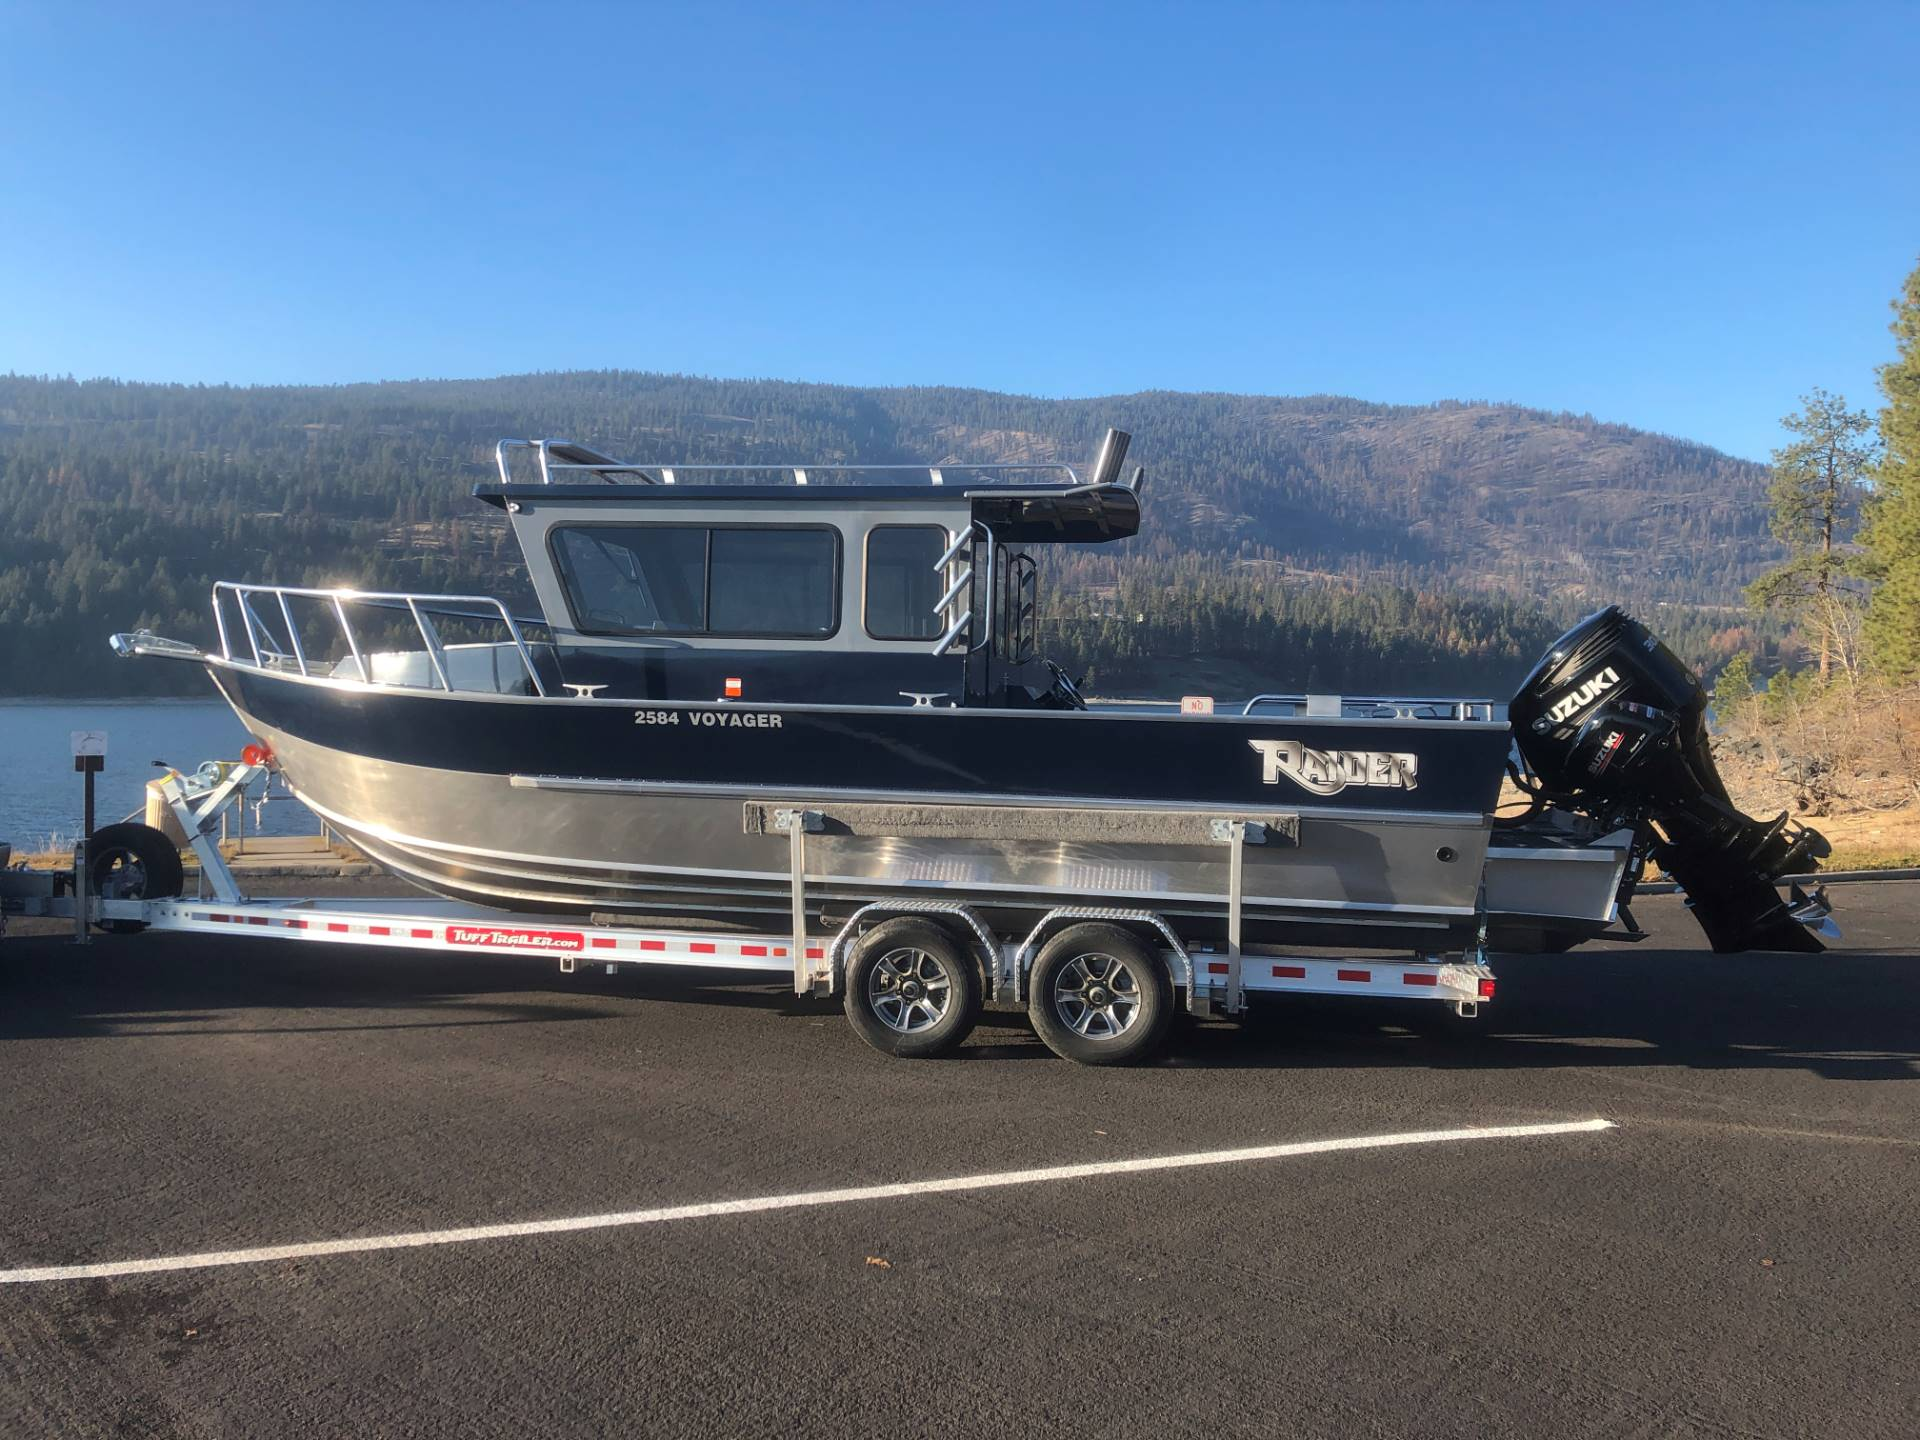 "2020 Raider Boats 2584 Voyager ""SOLD"" in Soldotna, Alaska"